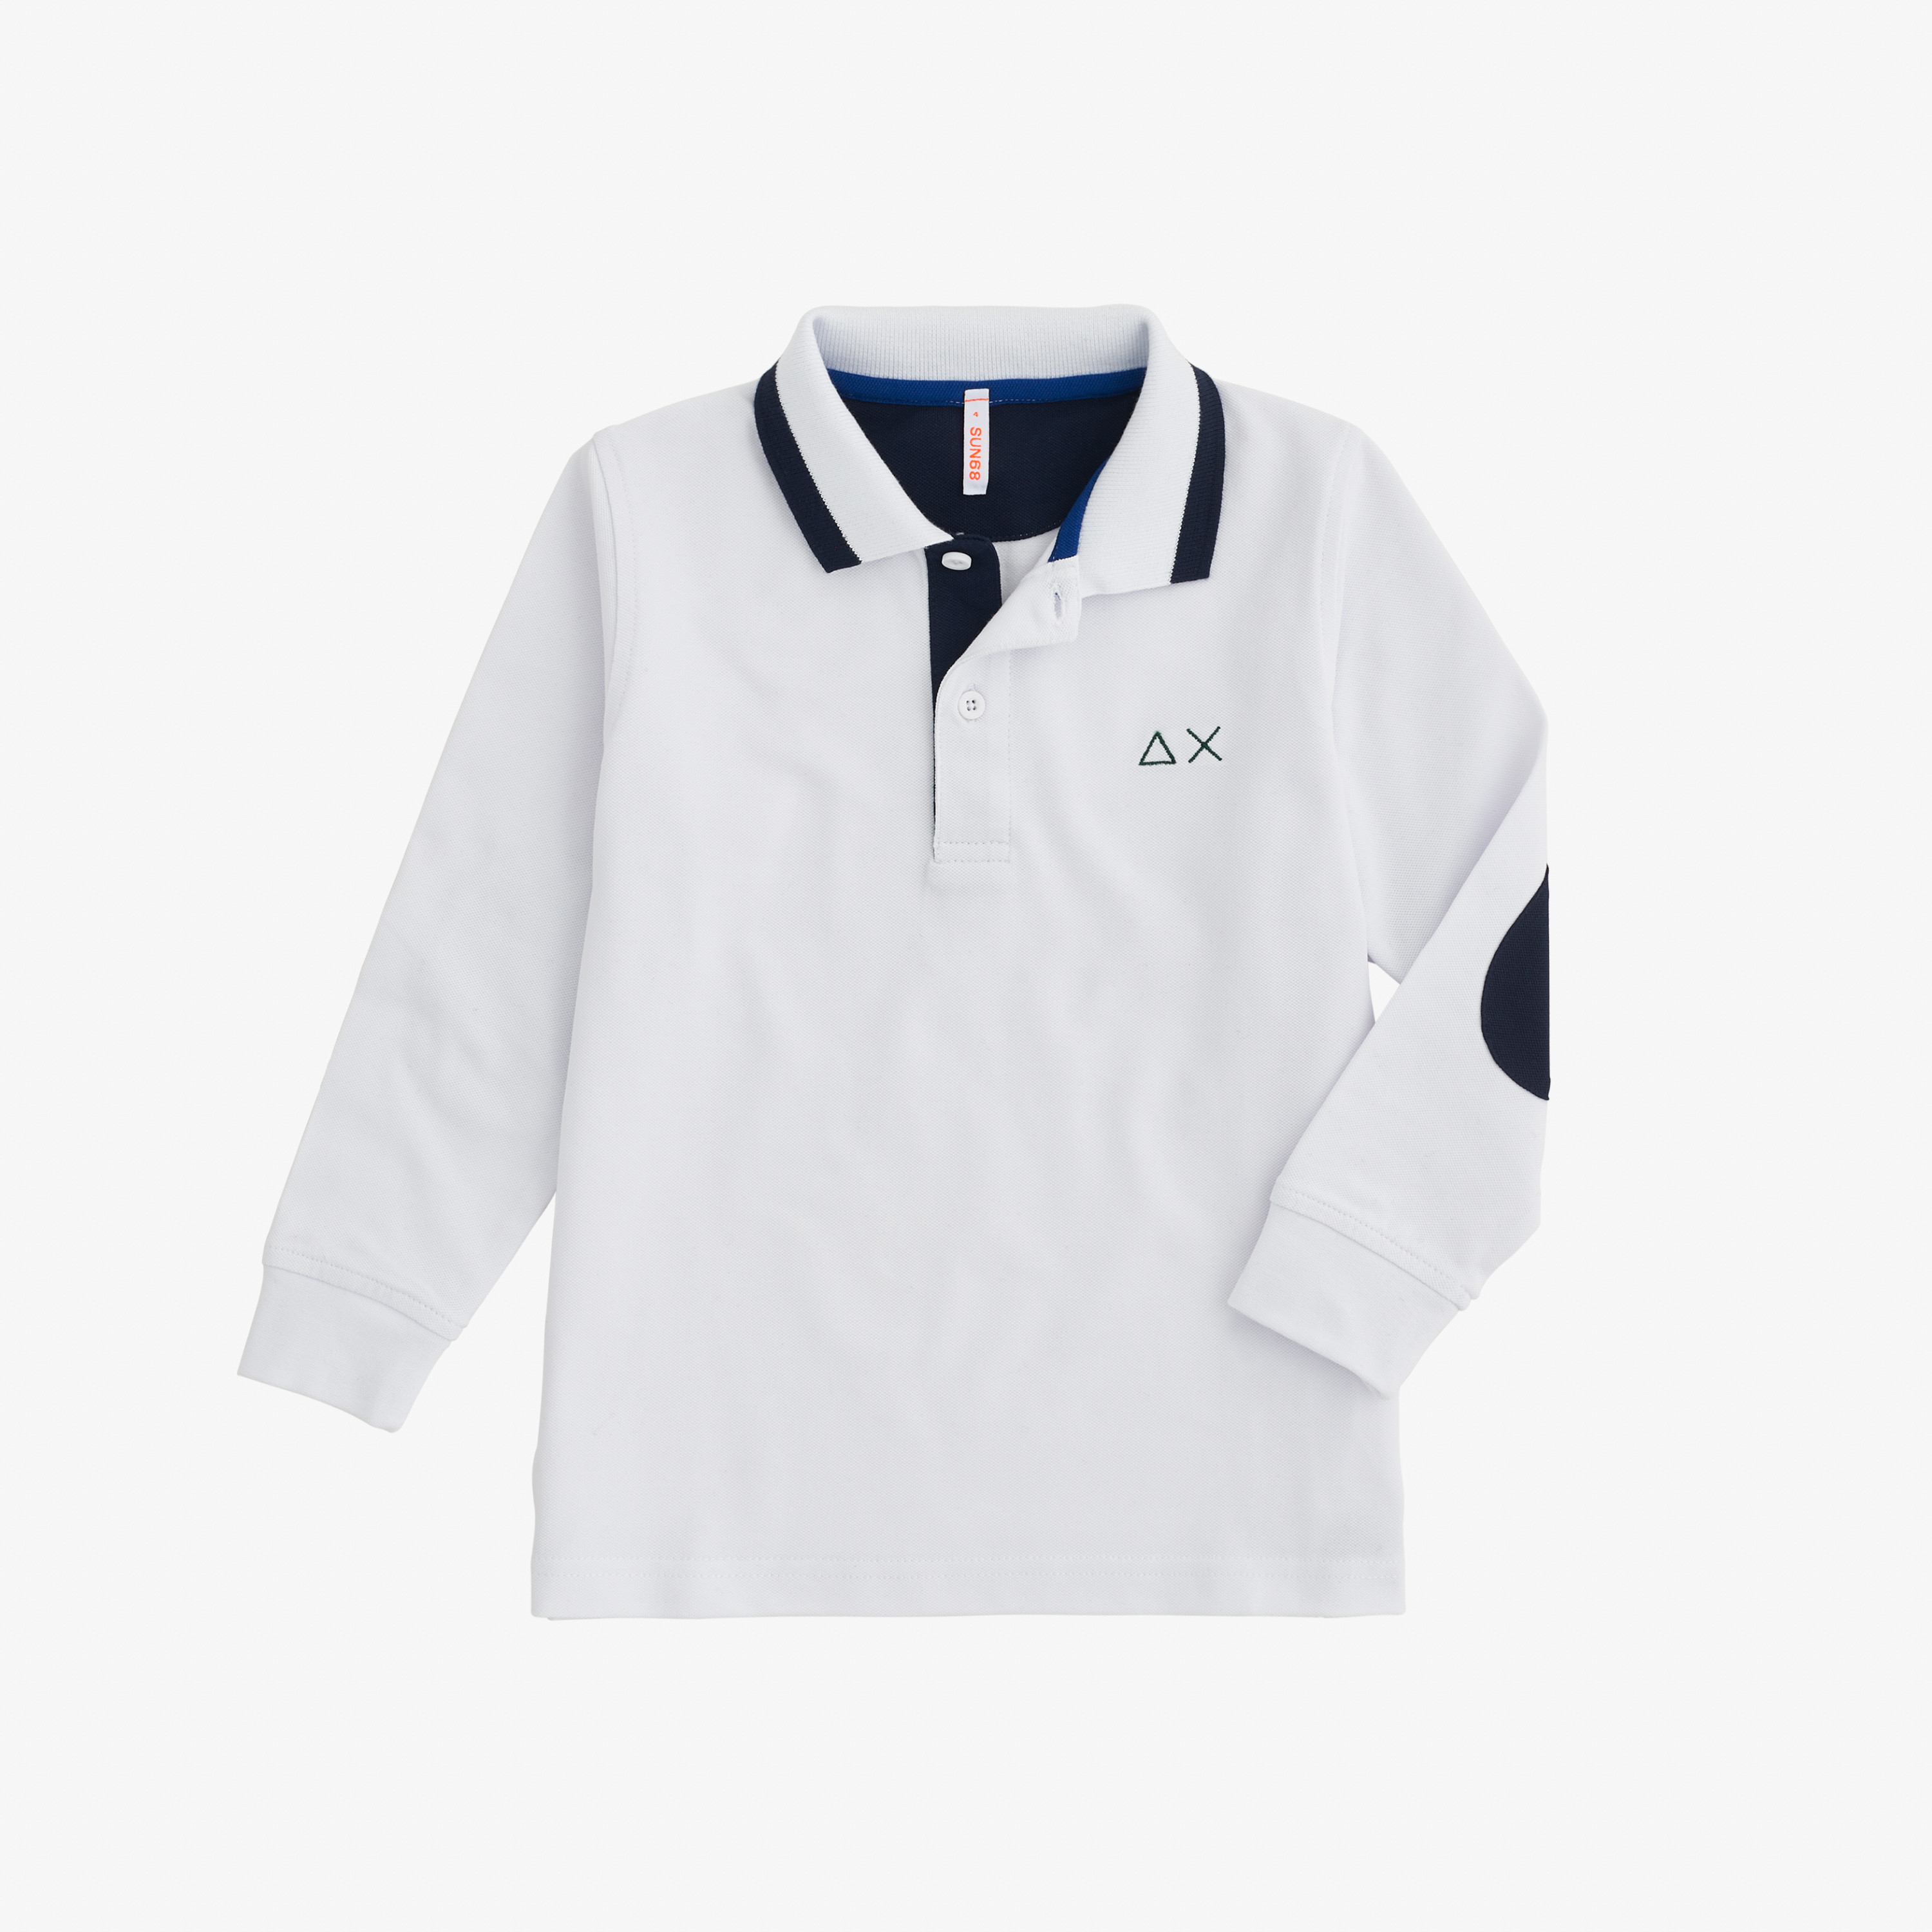 BOY'S POLO BIG STRIPES L/S BIANCO